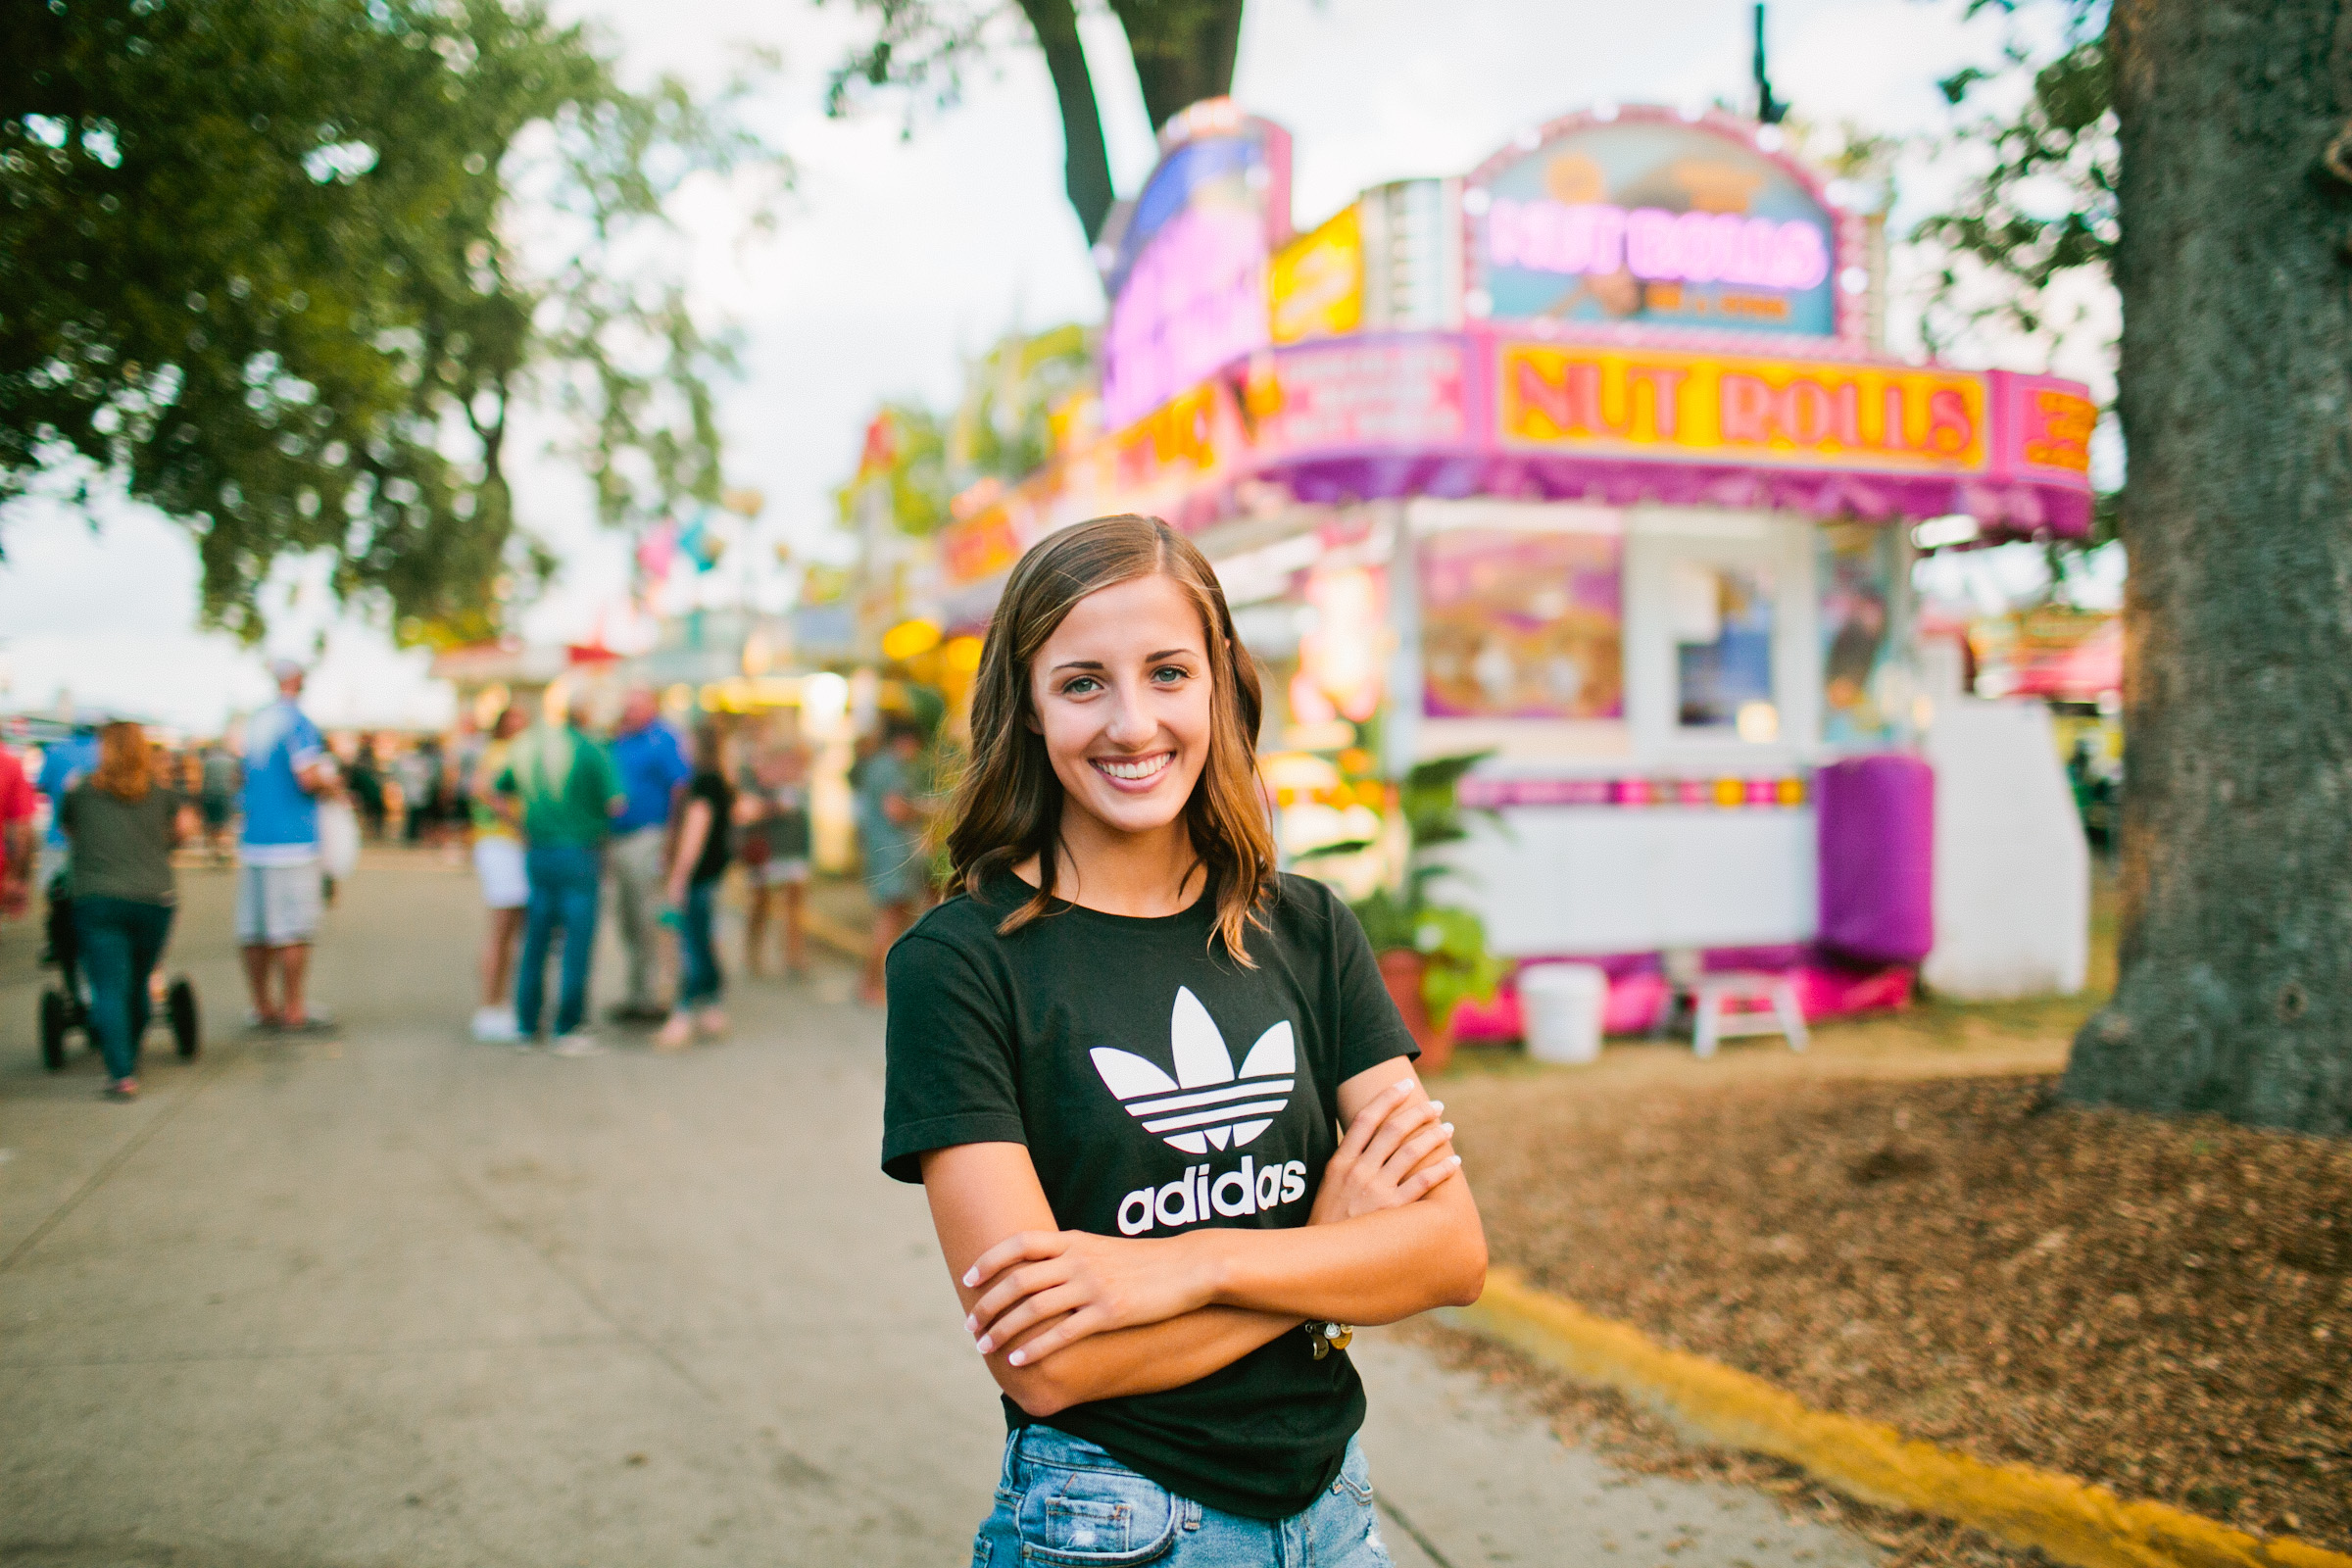 nut rolls and cotton candy and lemonade senior session Iowa State Fair 2018